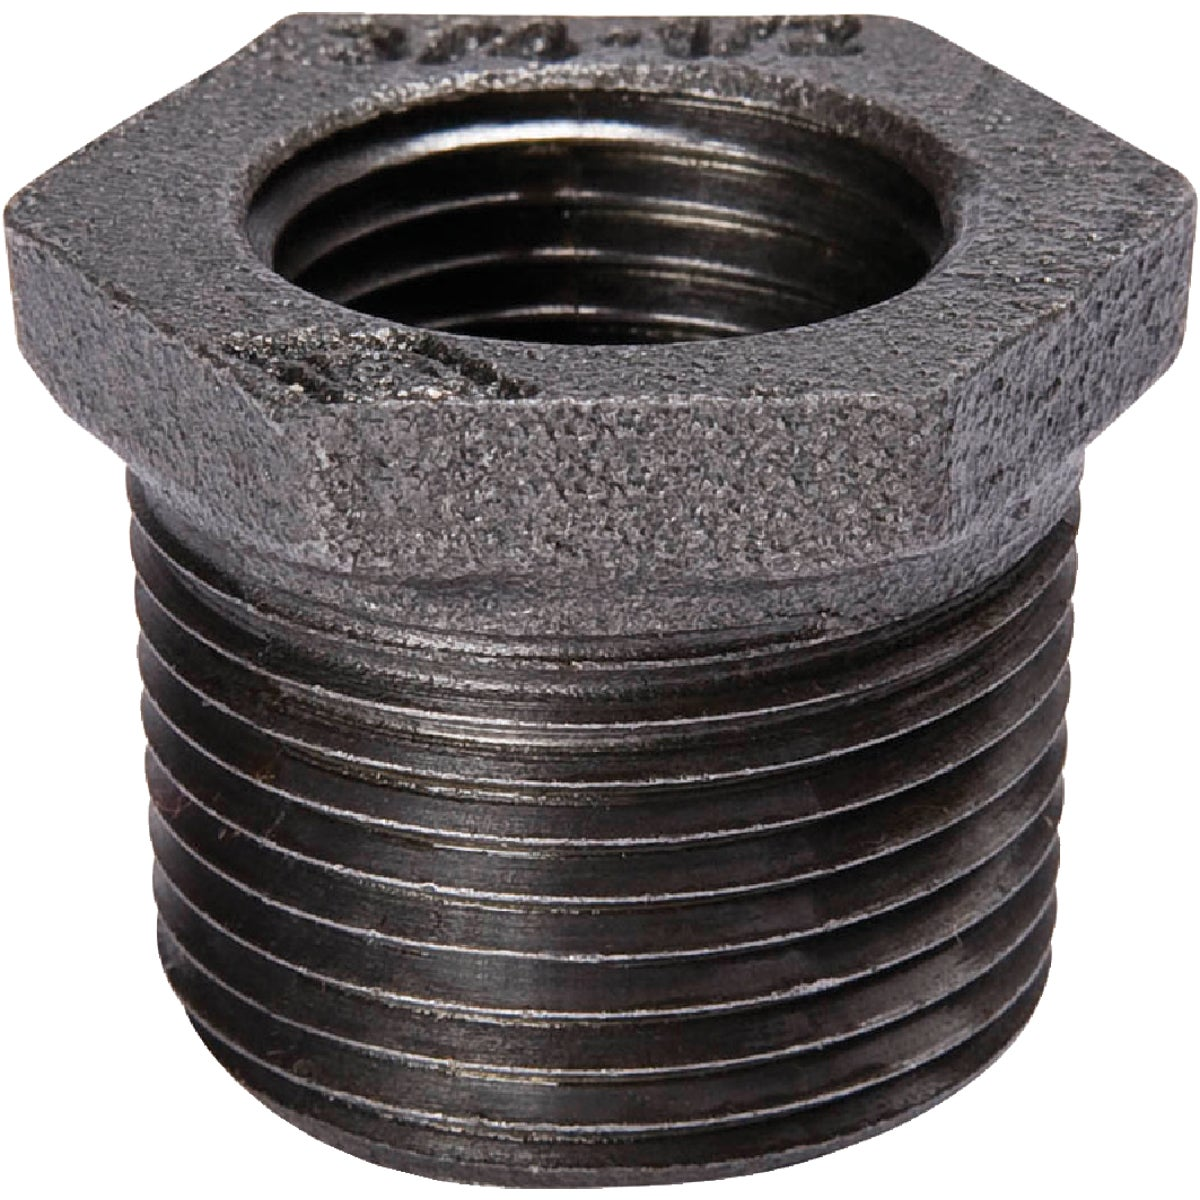 1/2X1/4 BLACK BUSHING